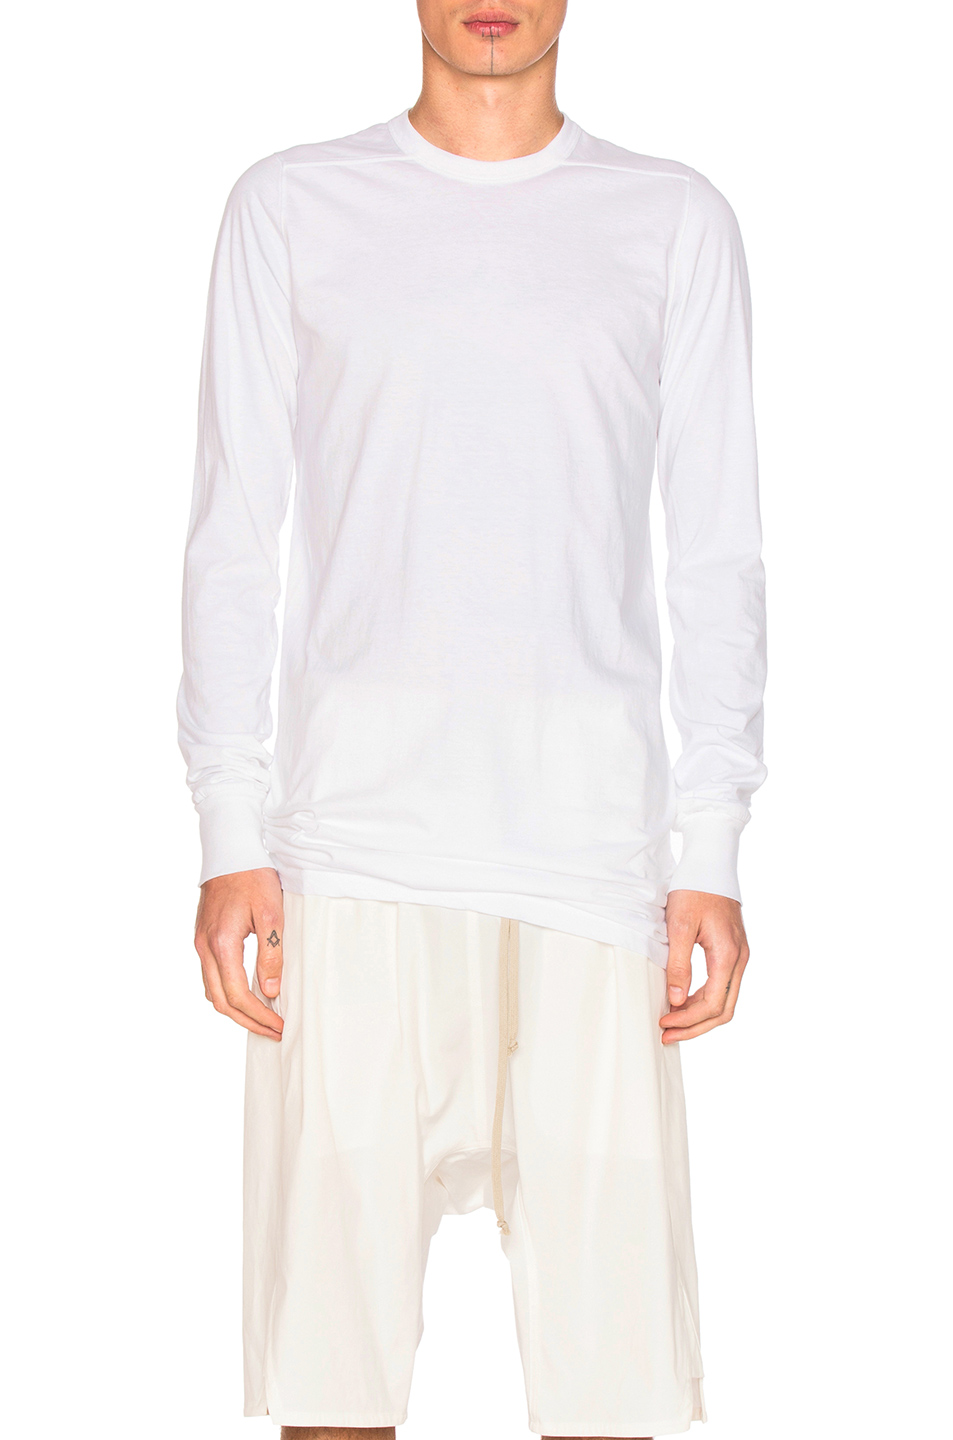 Rick Owens Long Sleeve Level Tee in White